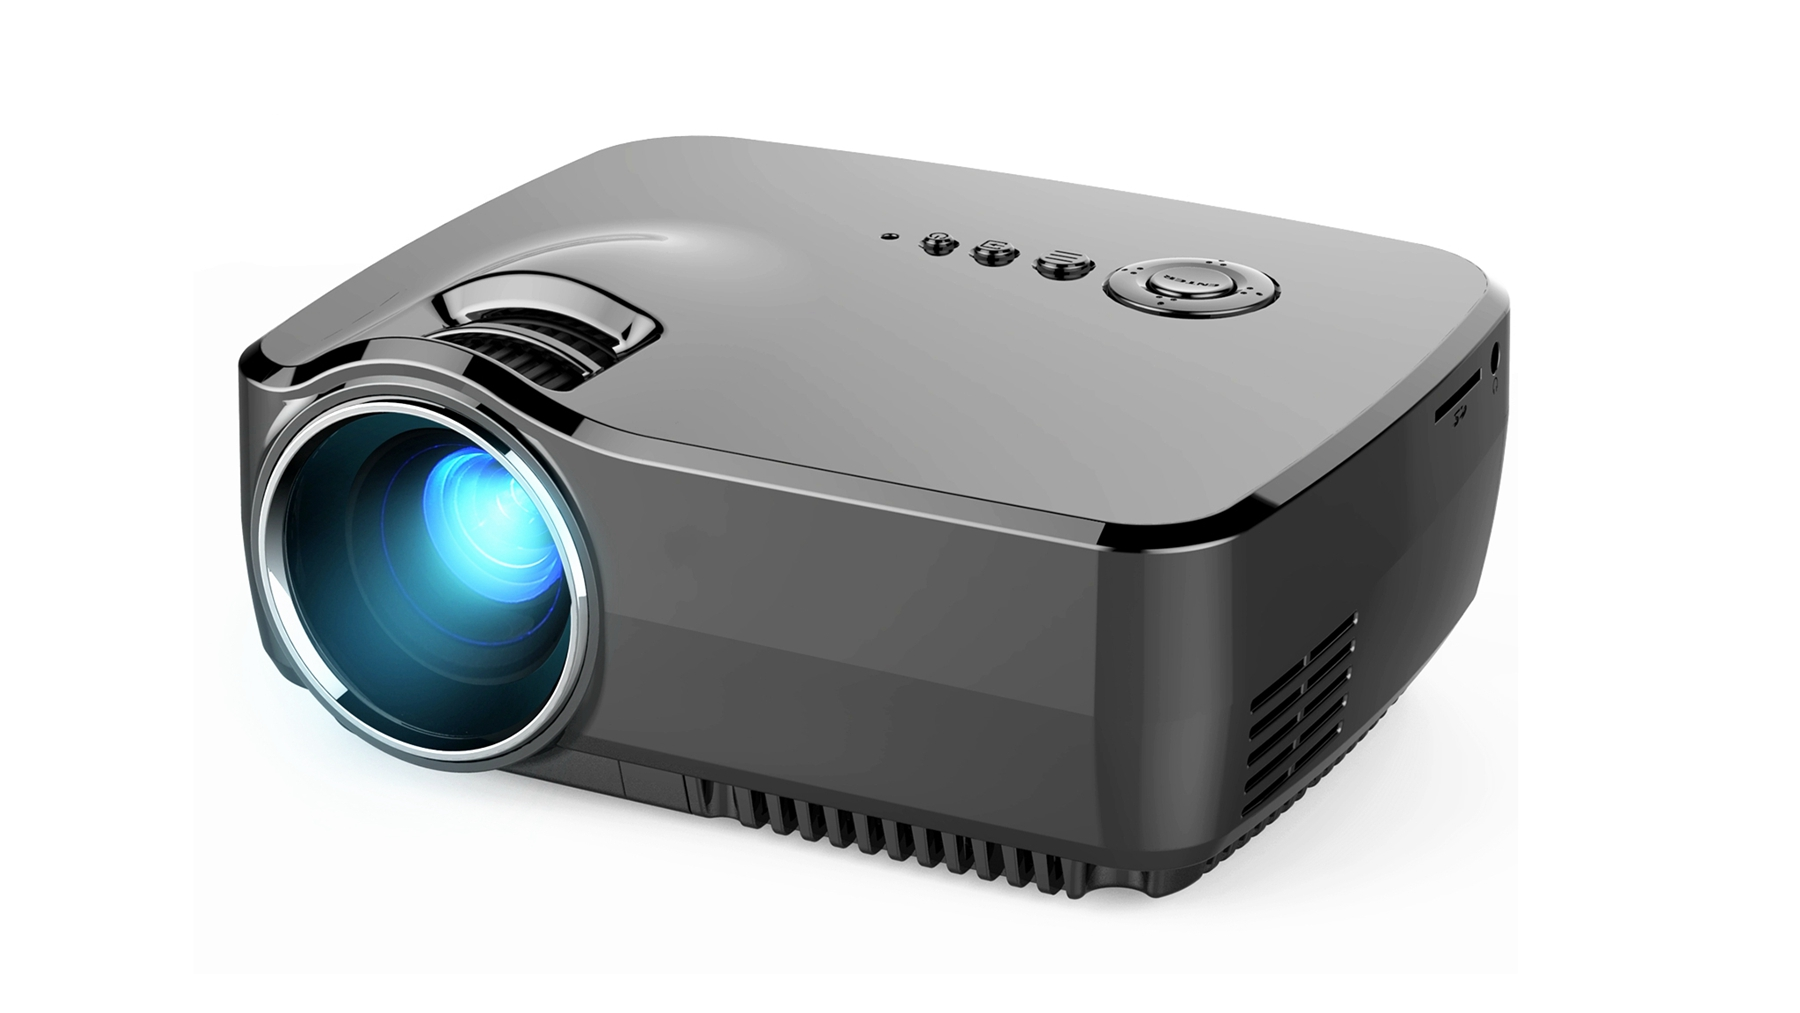 High quality GP70 video projector led pico projector for Multi-interface connect to computer